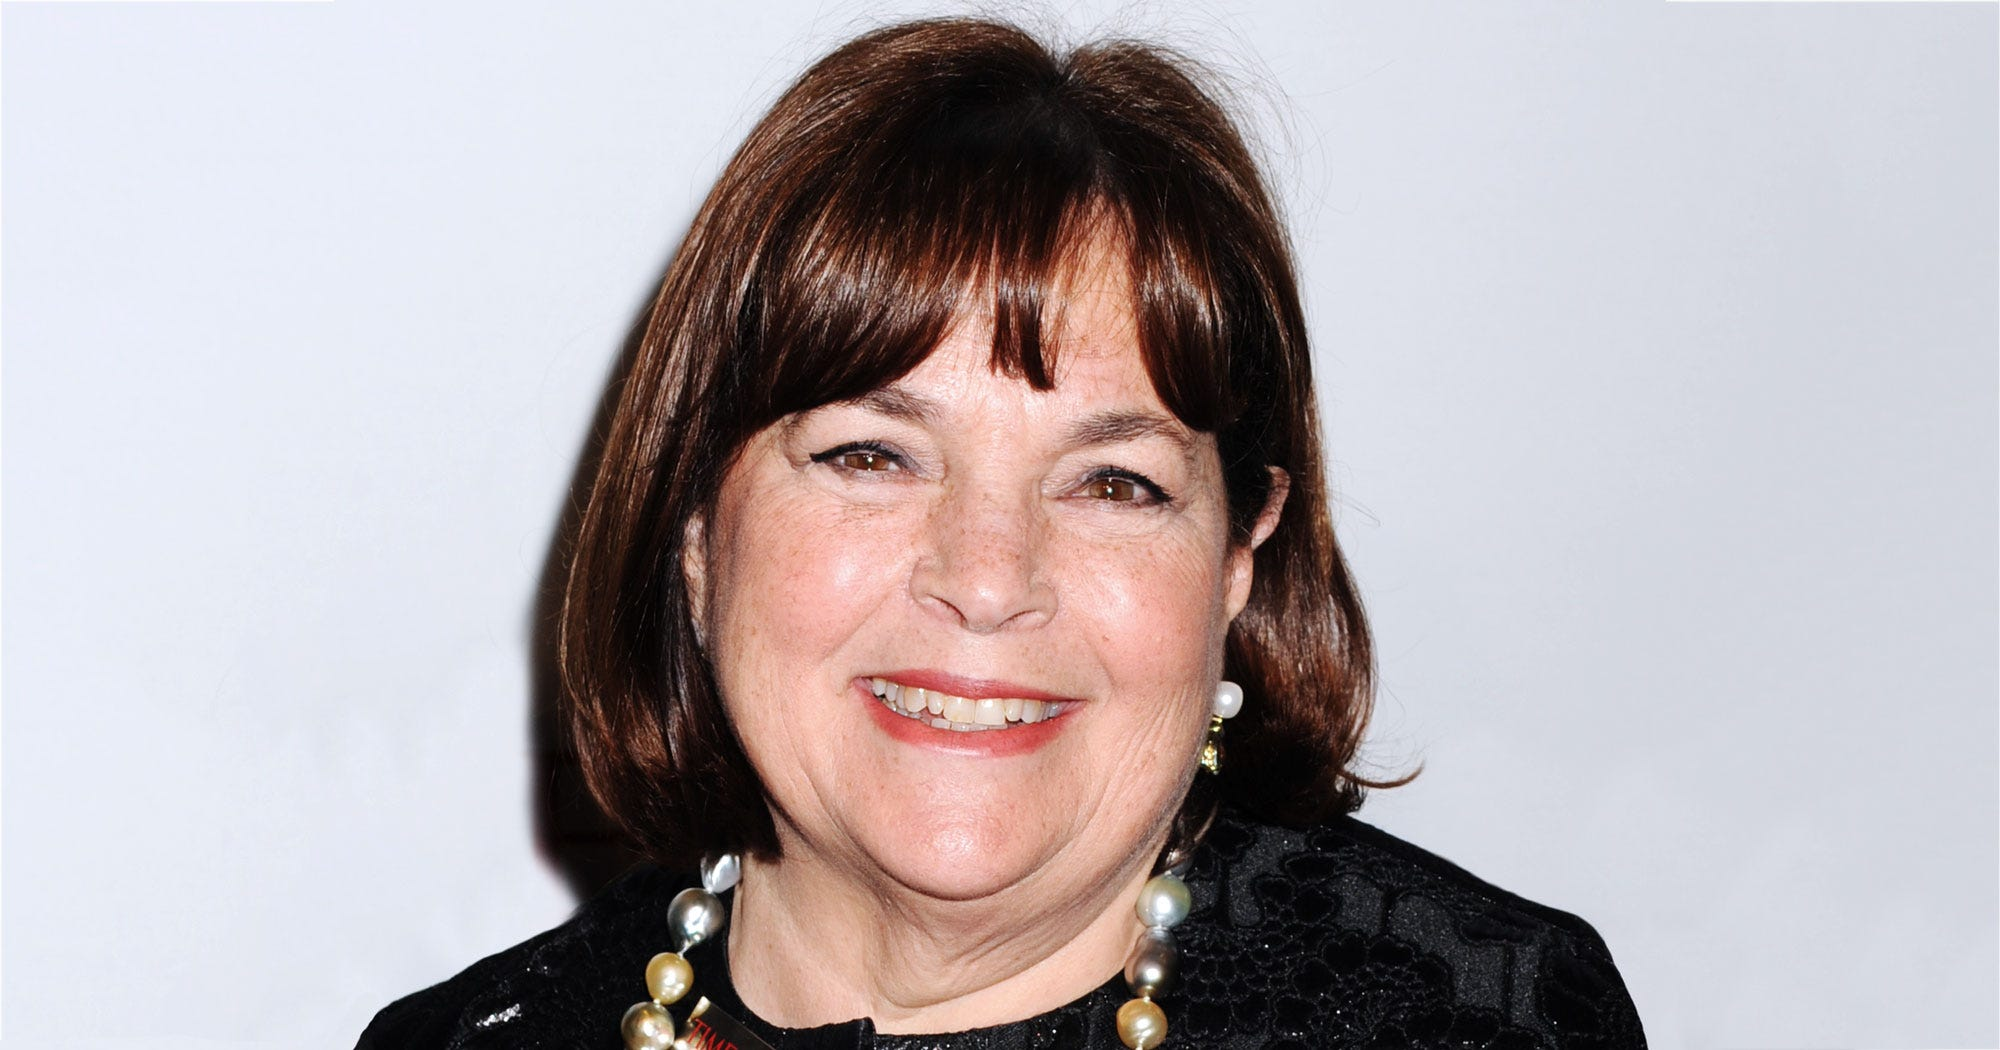 Ina garten cooking new barefoot contessa episodes - Ina garten tv show ...